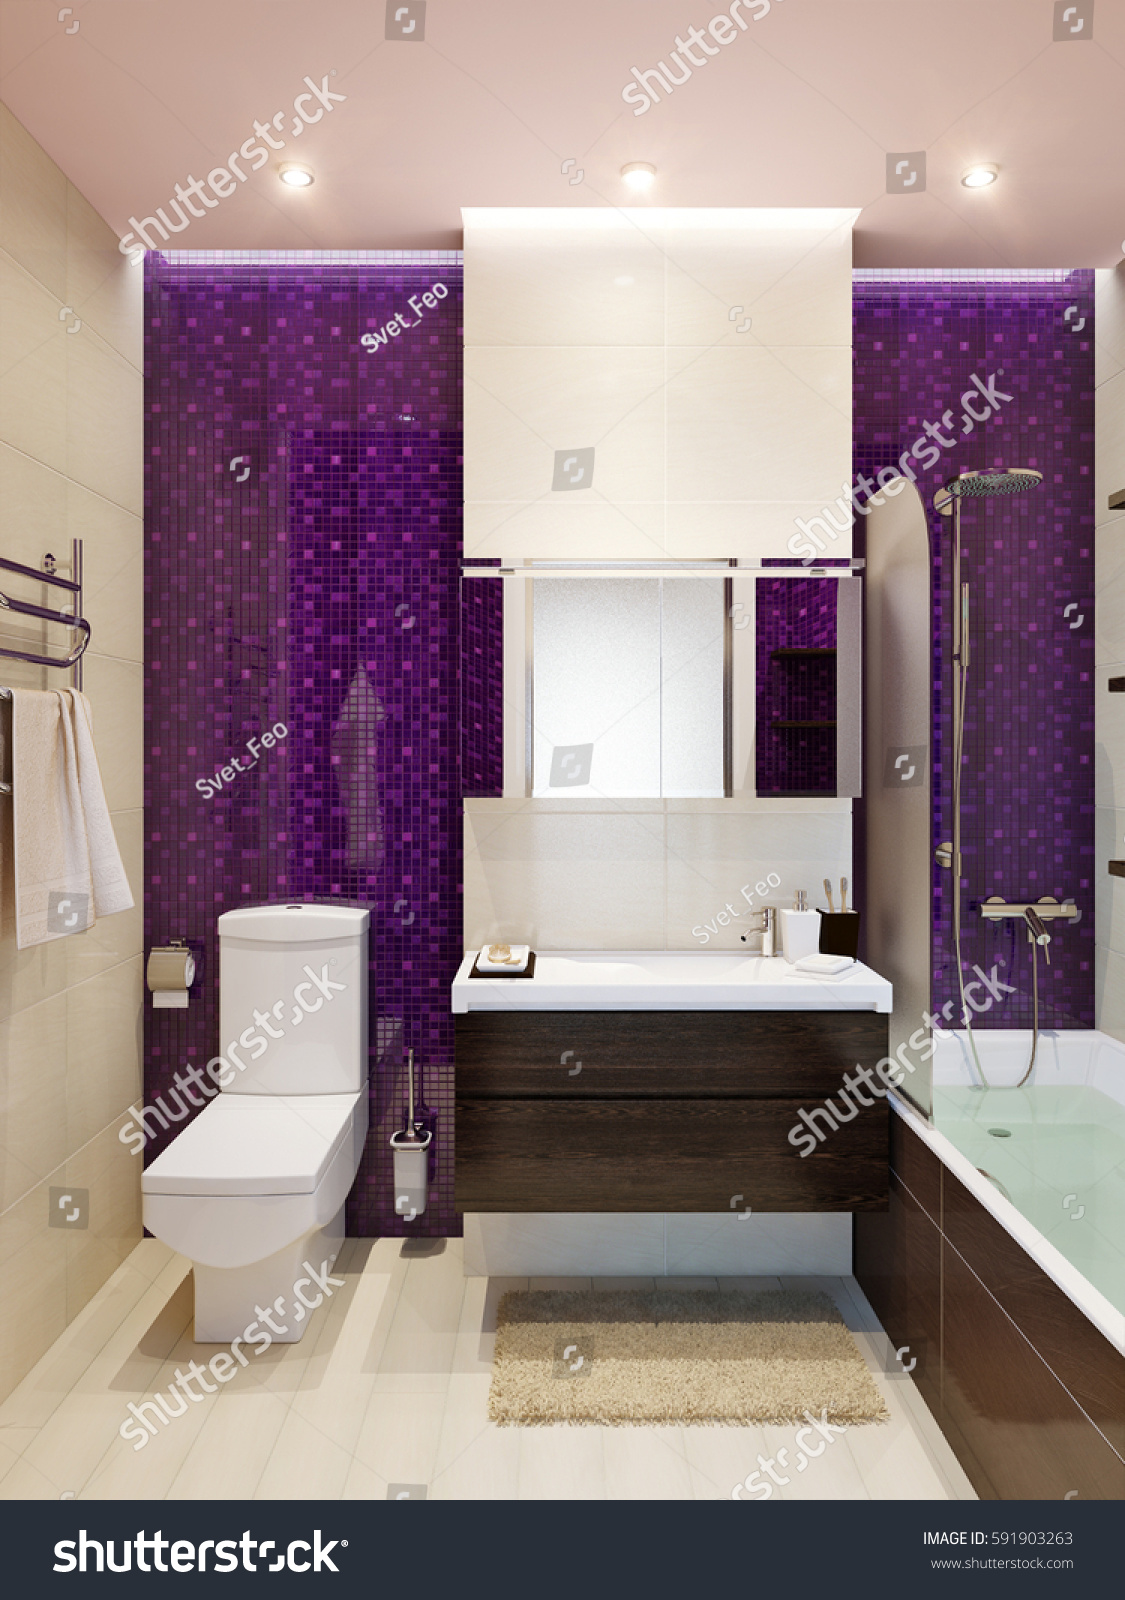 Modern bathroom interior with beige  violet purple and brown colors tiles   3d rendering. Modern Bathroom Interior Beige Violet Purple Stock Illustration